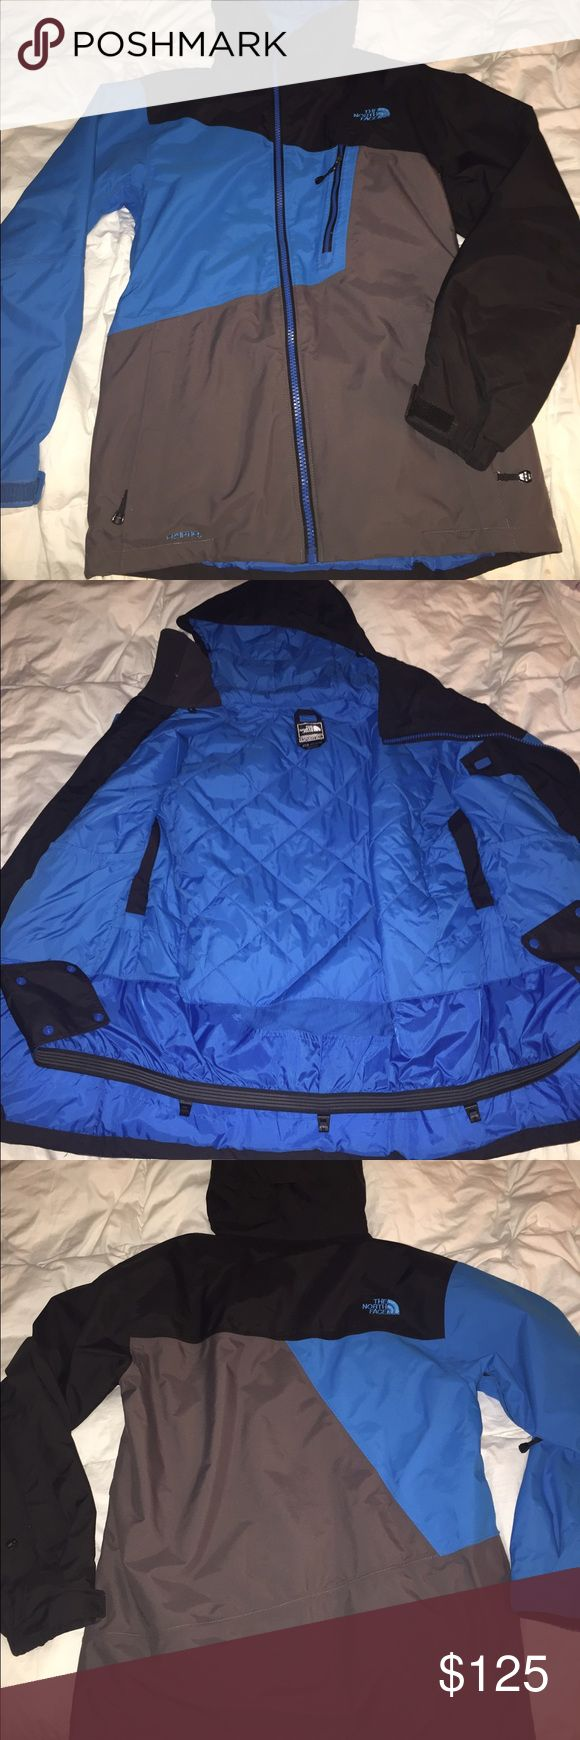 NorthFace Snow Jacket Men's NorthFace snow jacket. Very warm and quilted. Perfect condition. Snow guard attached. Men's small fits me and I'm a women's medium/large. Let me know! North Face Jackets & Coats Ski & Snowboard